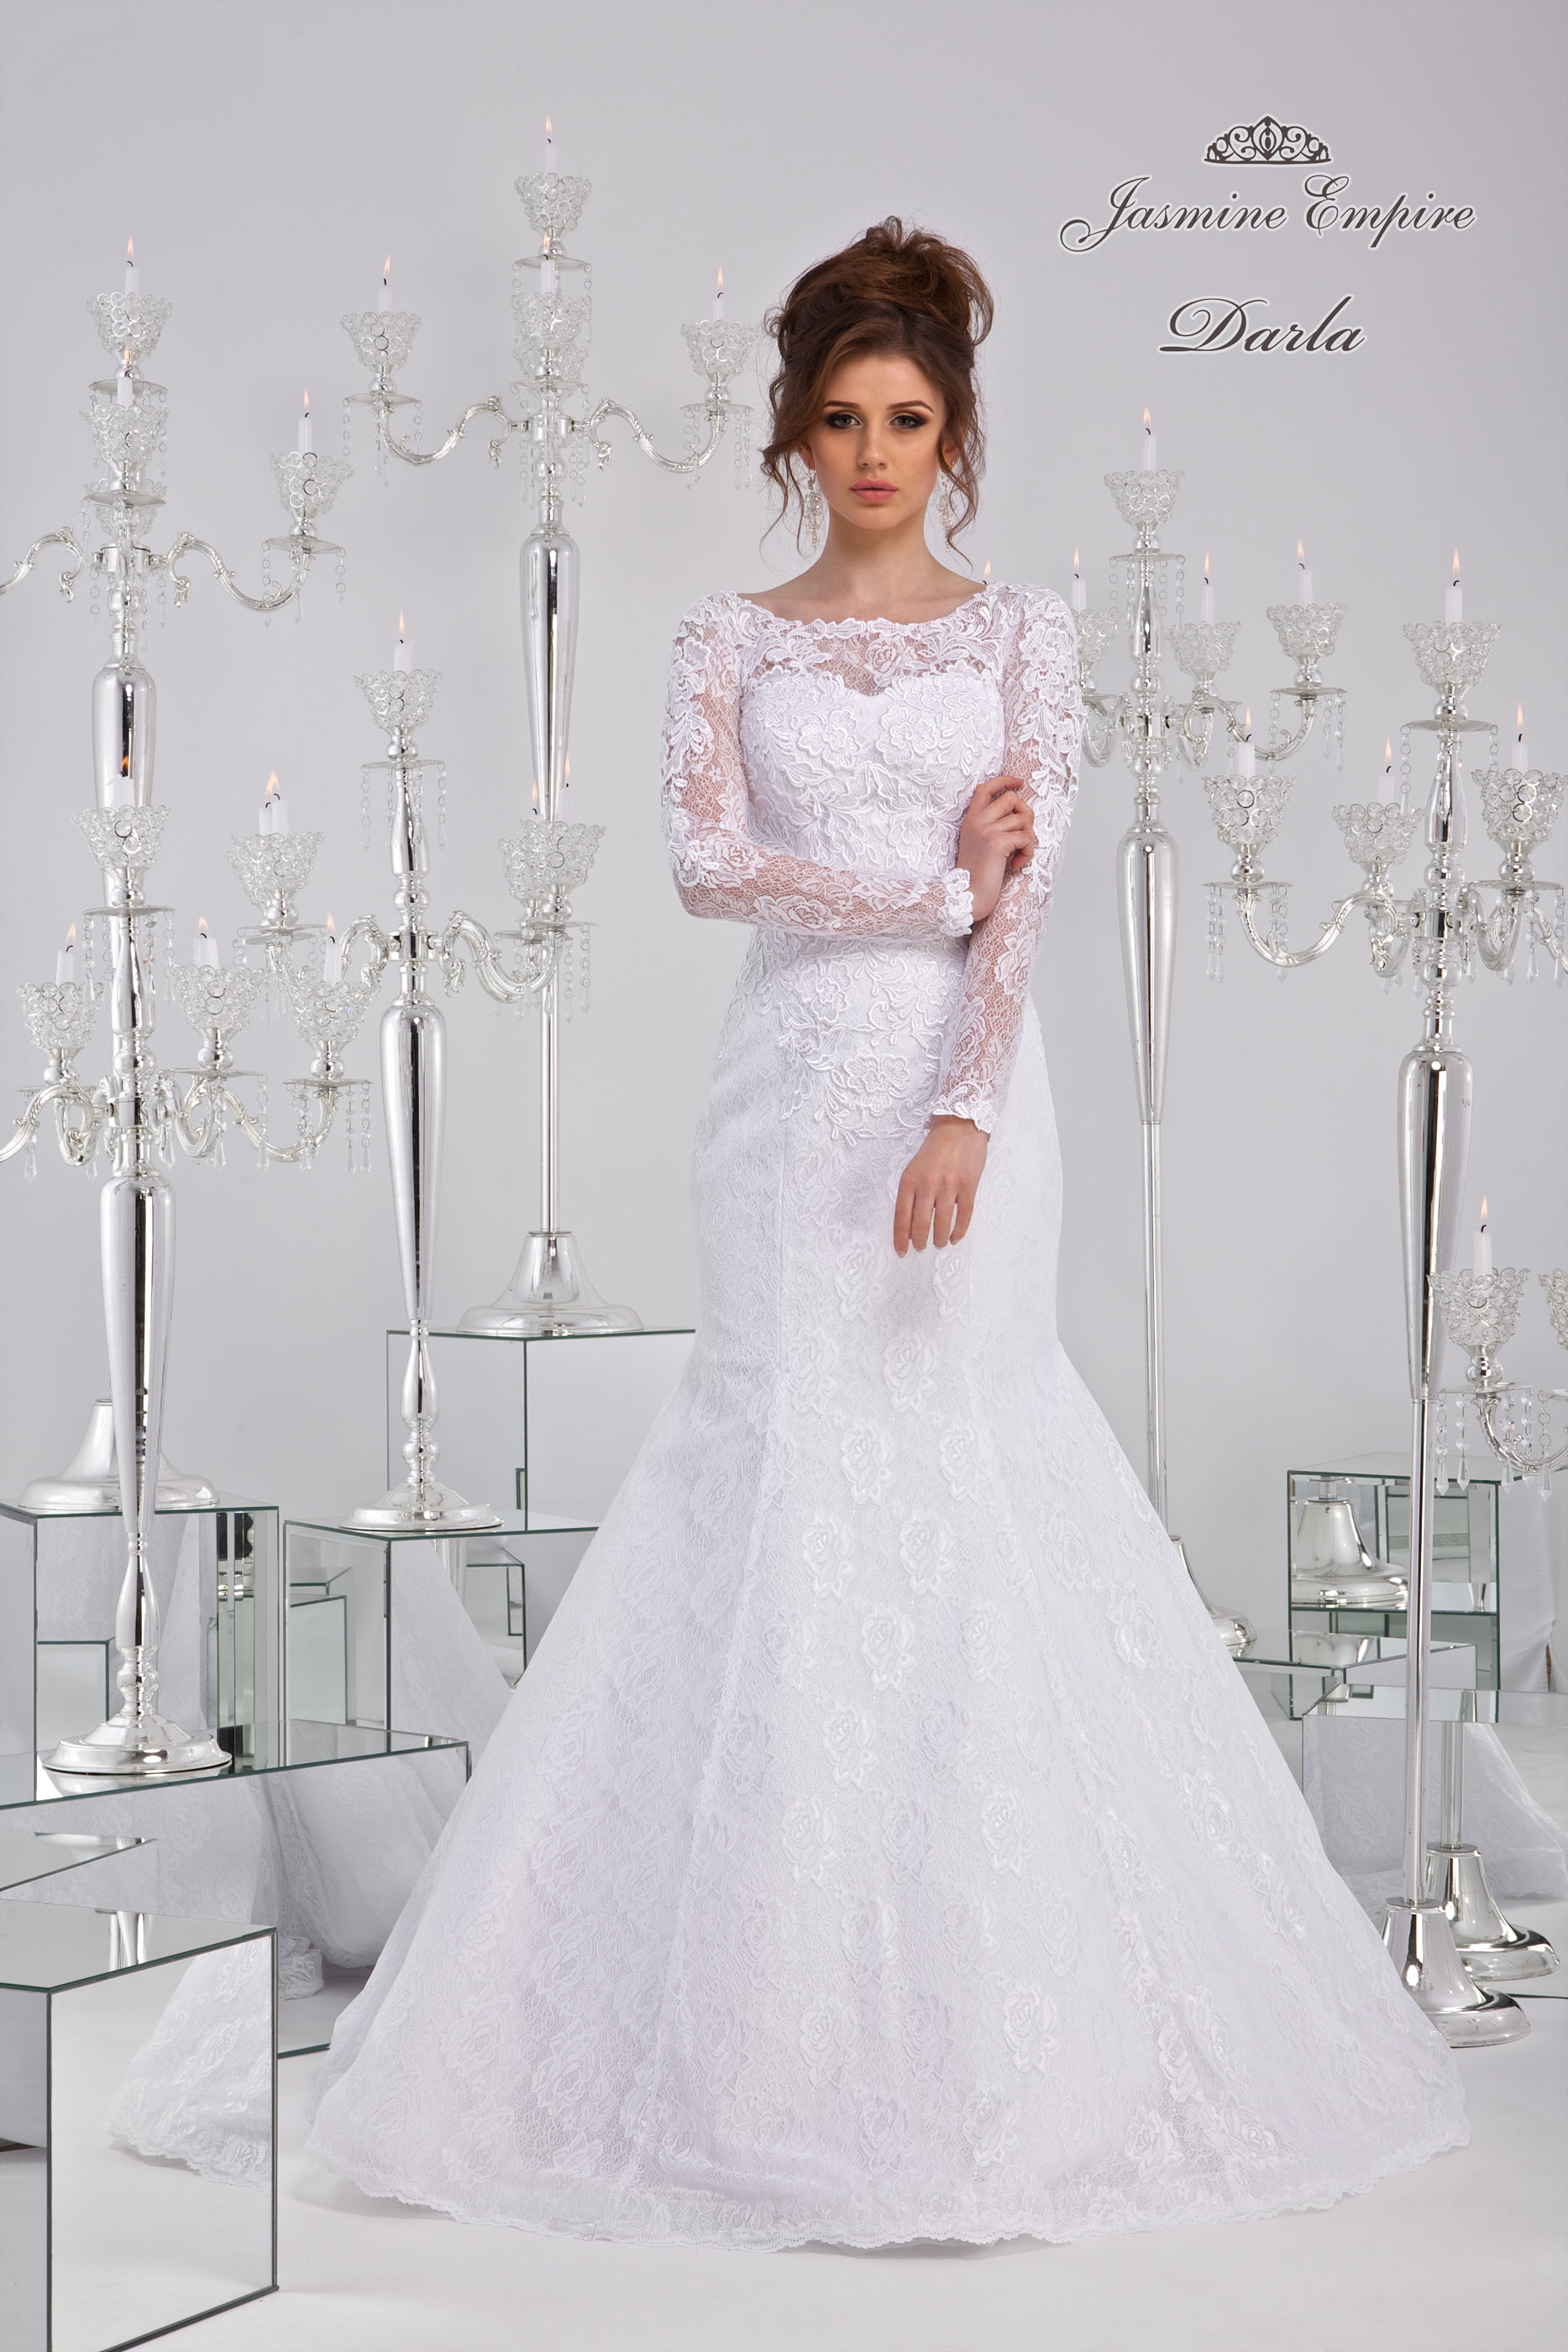 Wedding Dress DARLA  2